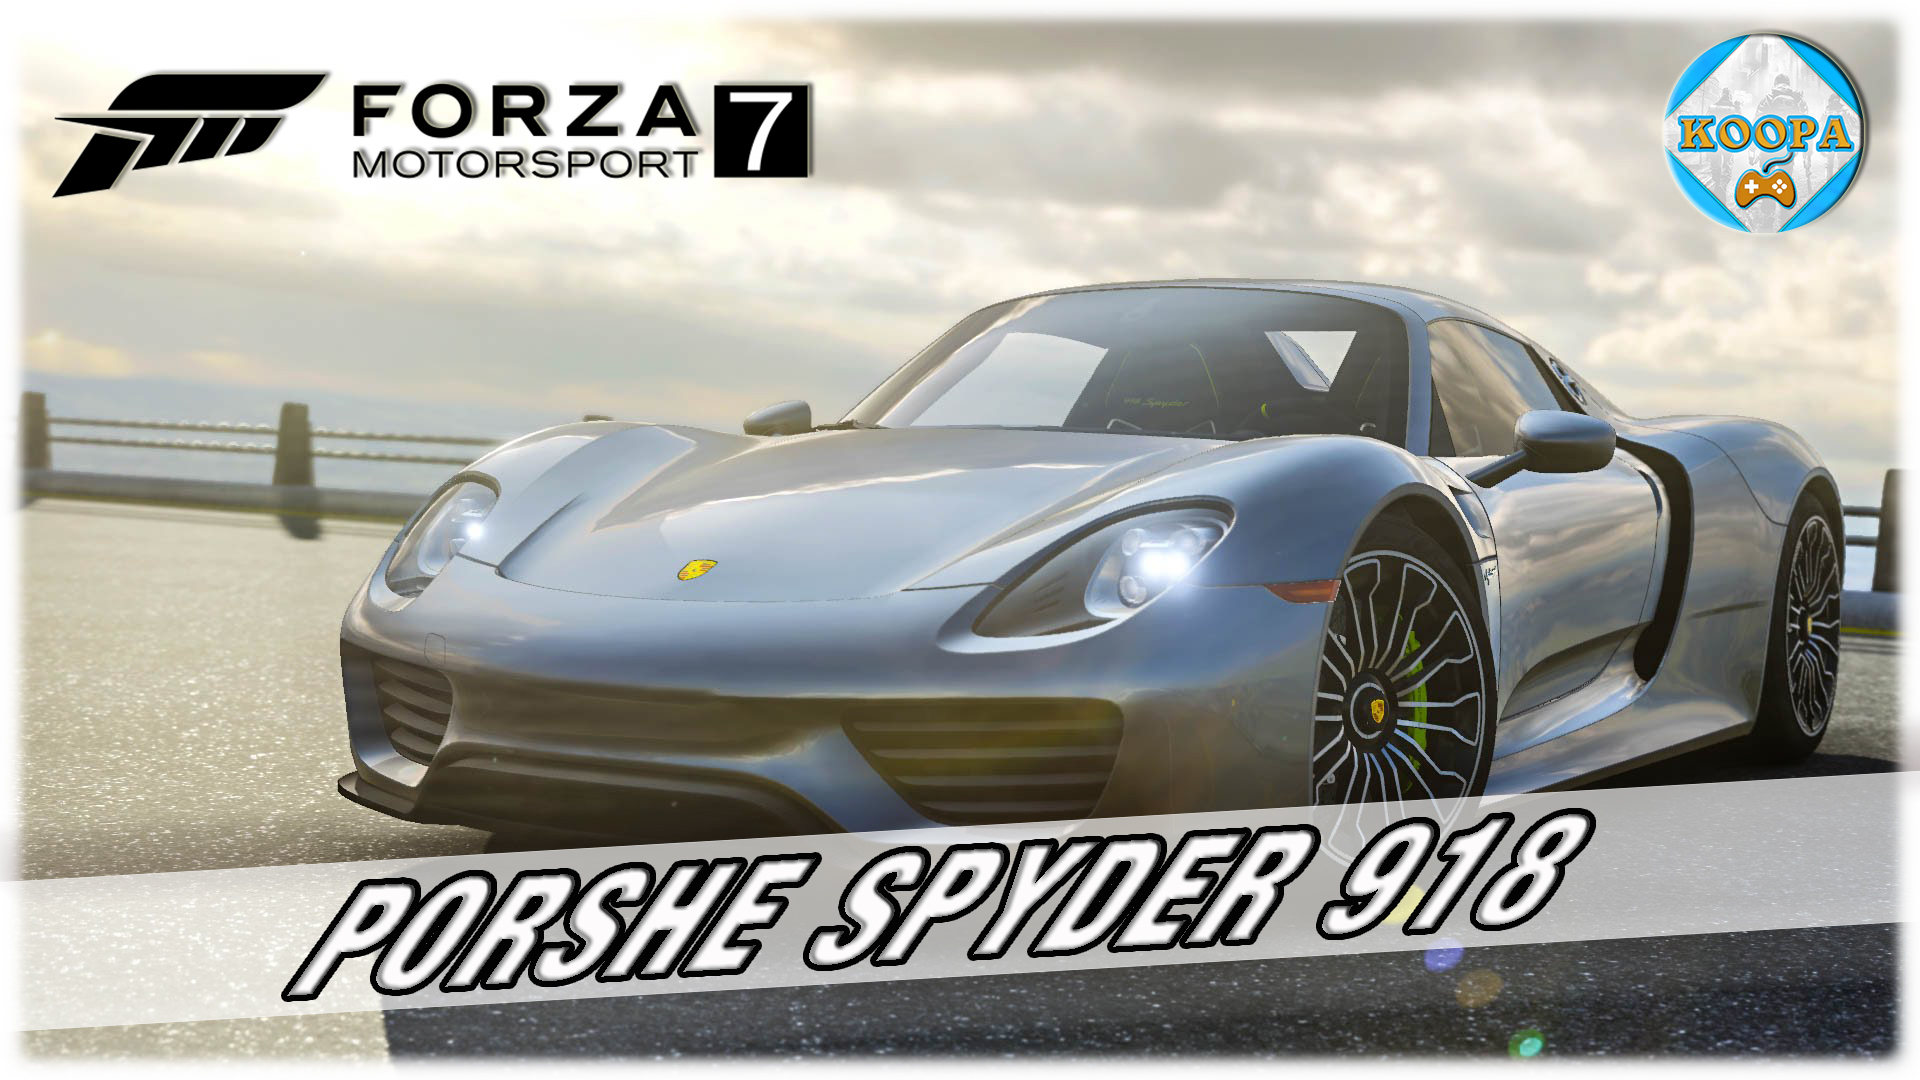 on teste la porsche spyder 918 forza motorsport 7. Black Bedroom Furniture Sets. Home Design Ideas